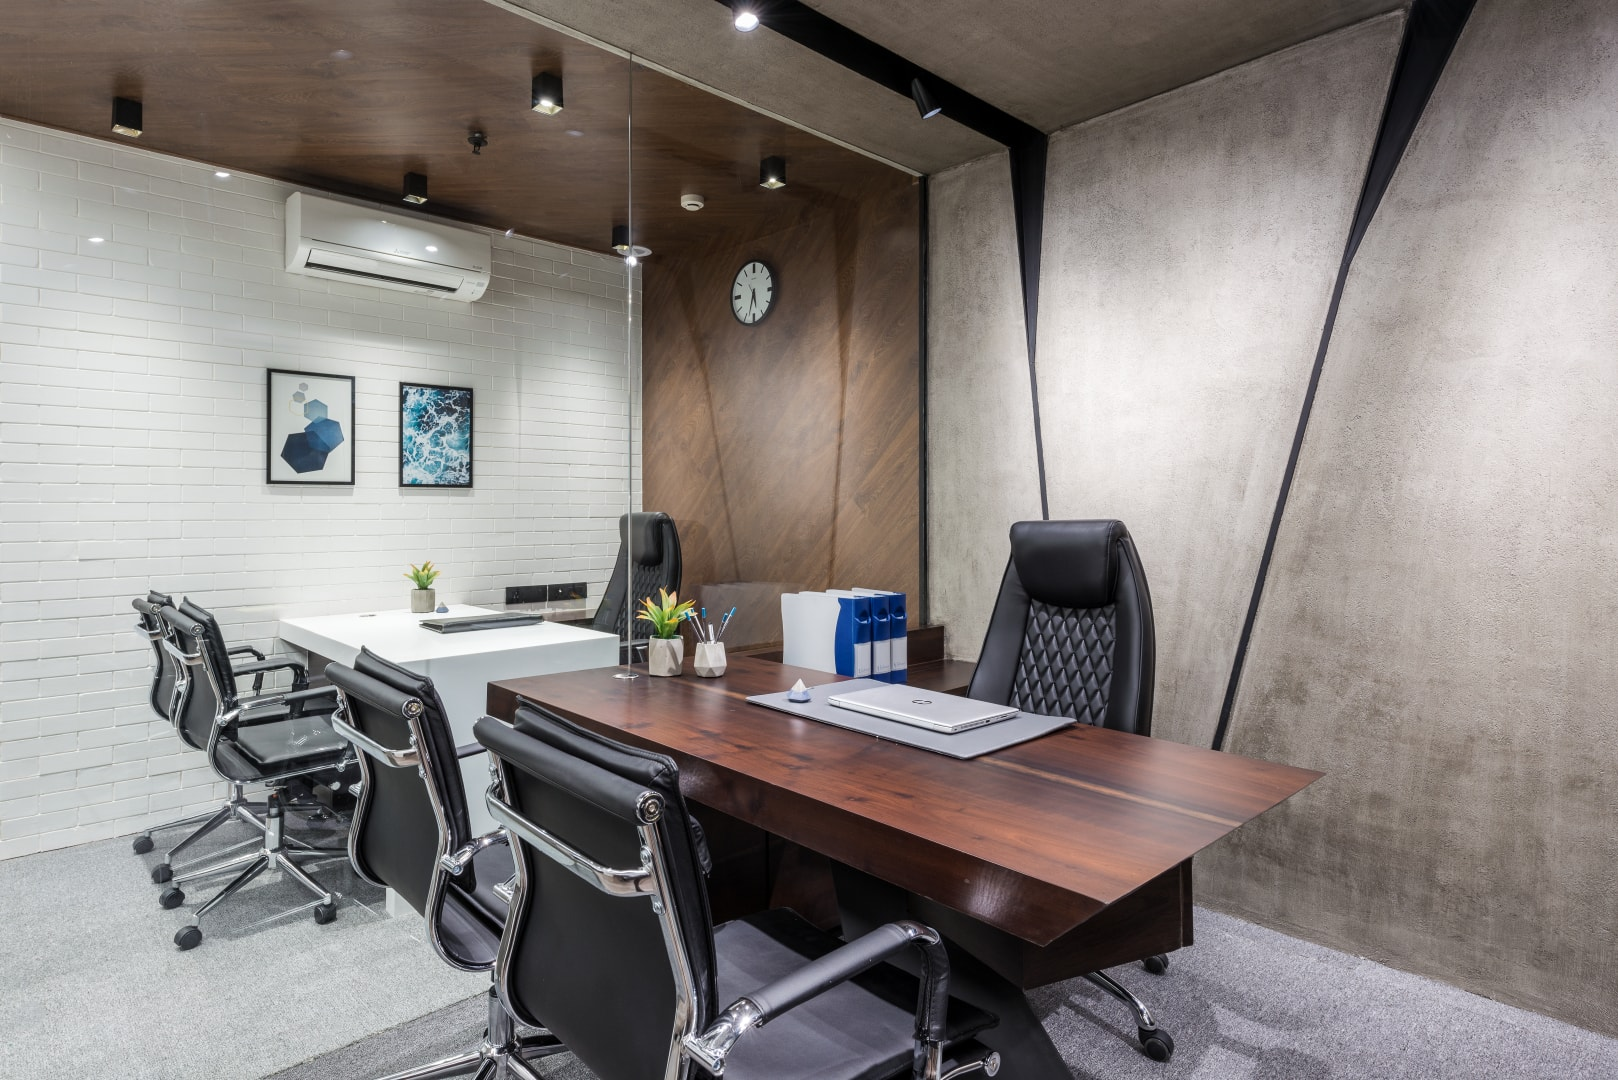 innovative cabin interior design | Office Design Is Bold and Spirited Composition | Limited ...